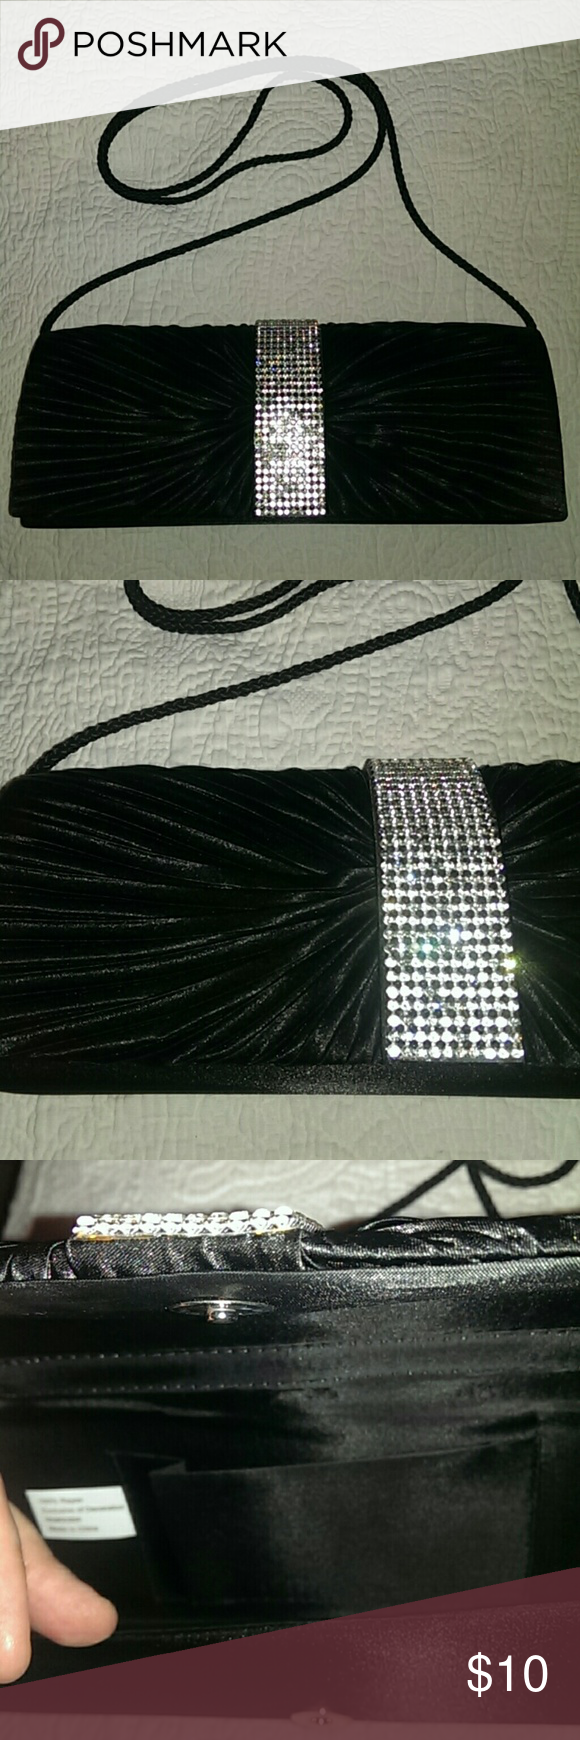 """3 for $15 Satin-like black clutch, w/ rhinestones I bought this years ago, but never used it. Black gathered satin-feel clutch with rhinestone decorations. Snap closure front, braided cord strap. Some rhinestones missing, some scuffs, marks, and manufacturing flaws.  Dimensions: 10"""" x 4"""" x 1.5""""  Questions and offers encouraged! Bags Clutches & Wristlets"""